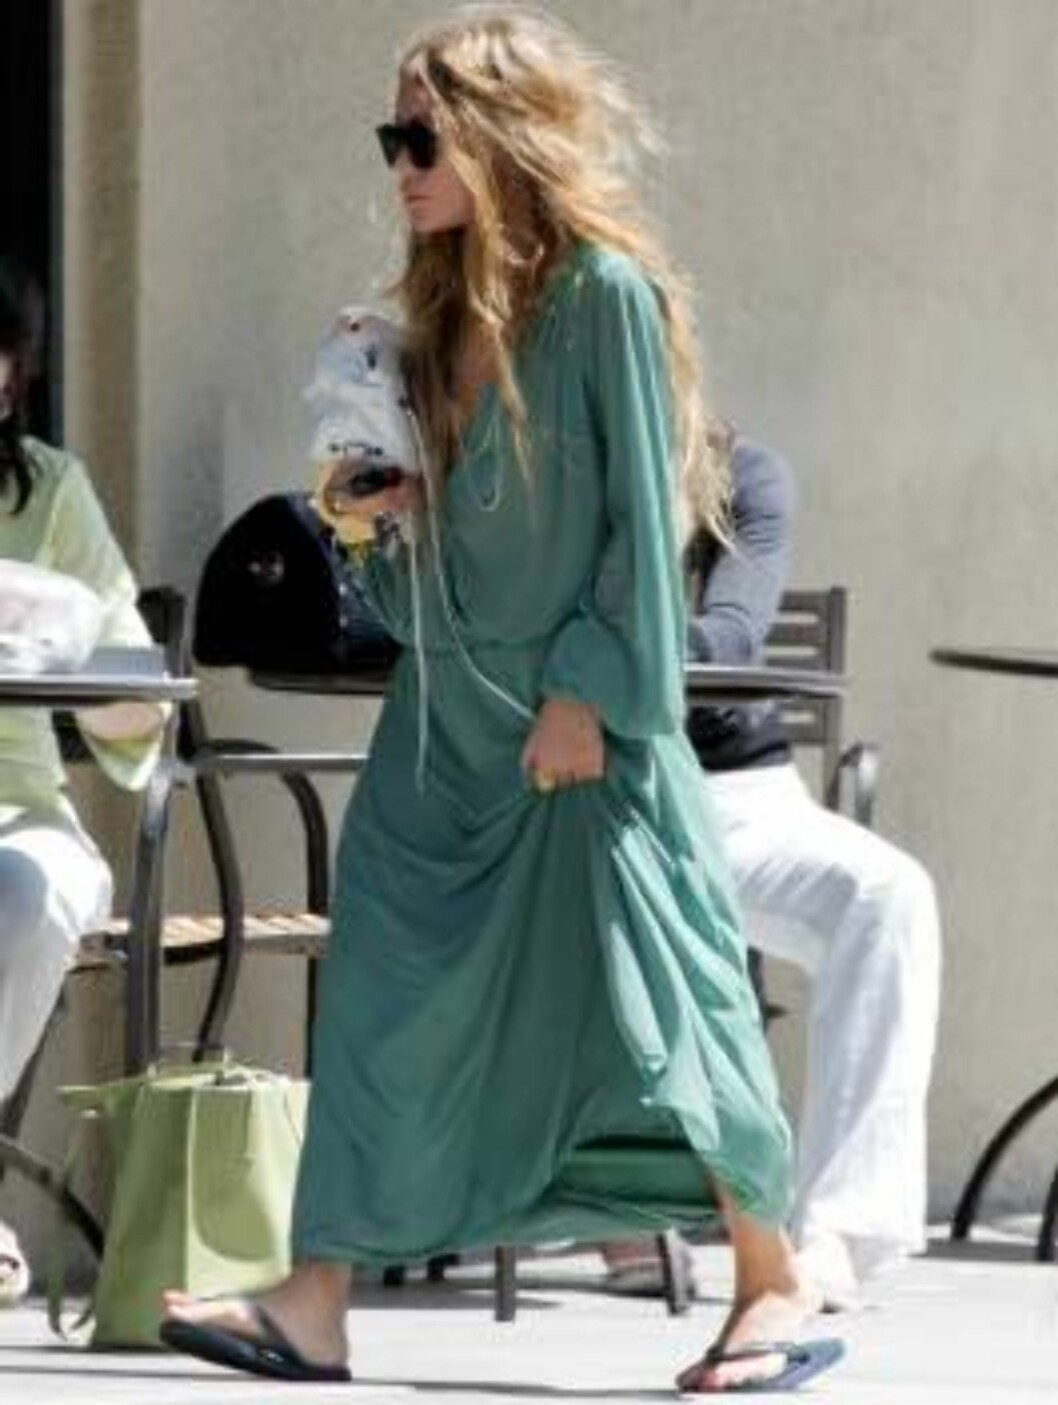 Mary Kate Olsen going to Starbucks shows she is still a fashion icon with large green dress. June 19, 2006 X17agency EXCLUSIVE Foto: All Over Press